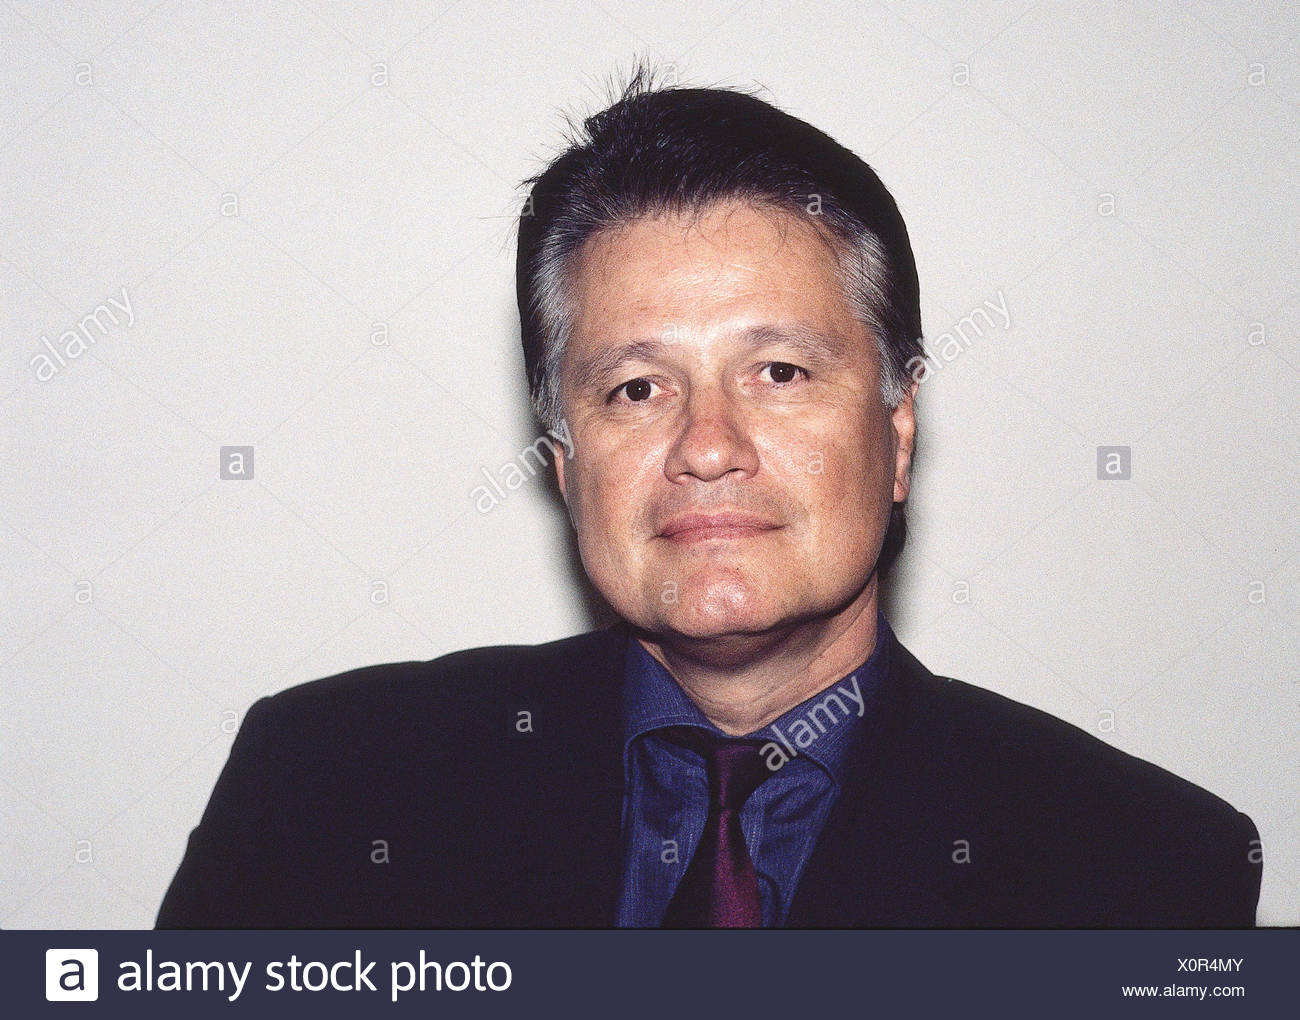 Knopp, Guido, * 29.1.1948, German journalist, publicist, portrait, 2000, Additional-Rights-Clearances-NA Stock Photo